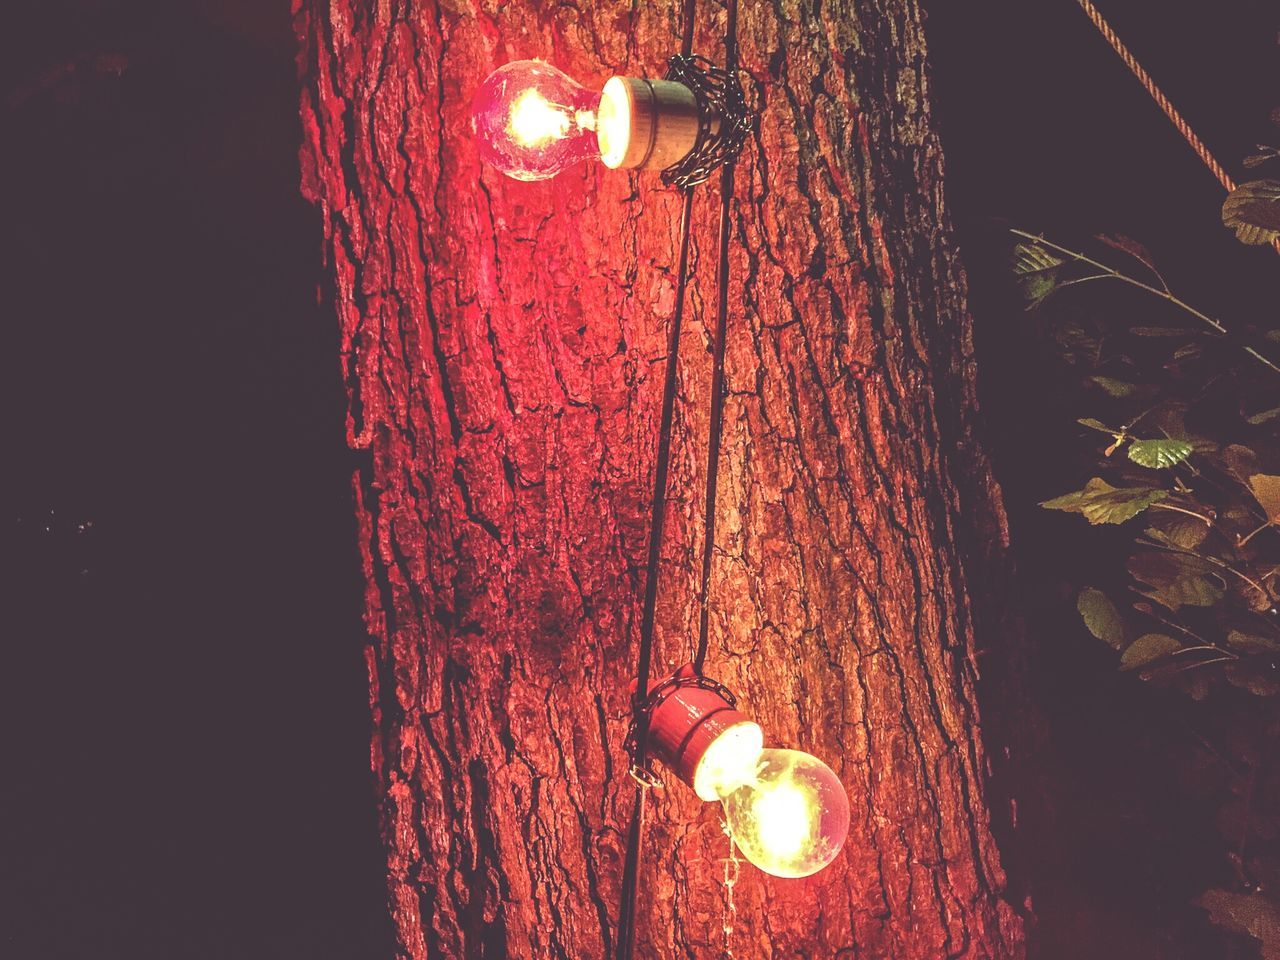 Art Photography Backgrounds No People TreePorn Light Red Color Artphotography Rote Lampe ArtWork Red Light Red Lights Red Colorful Night Photography Bulbs Bulb Bulbphotography